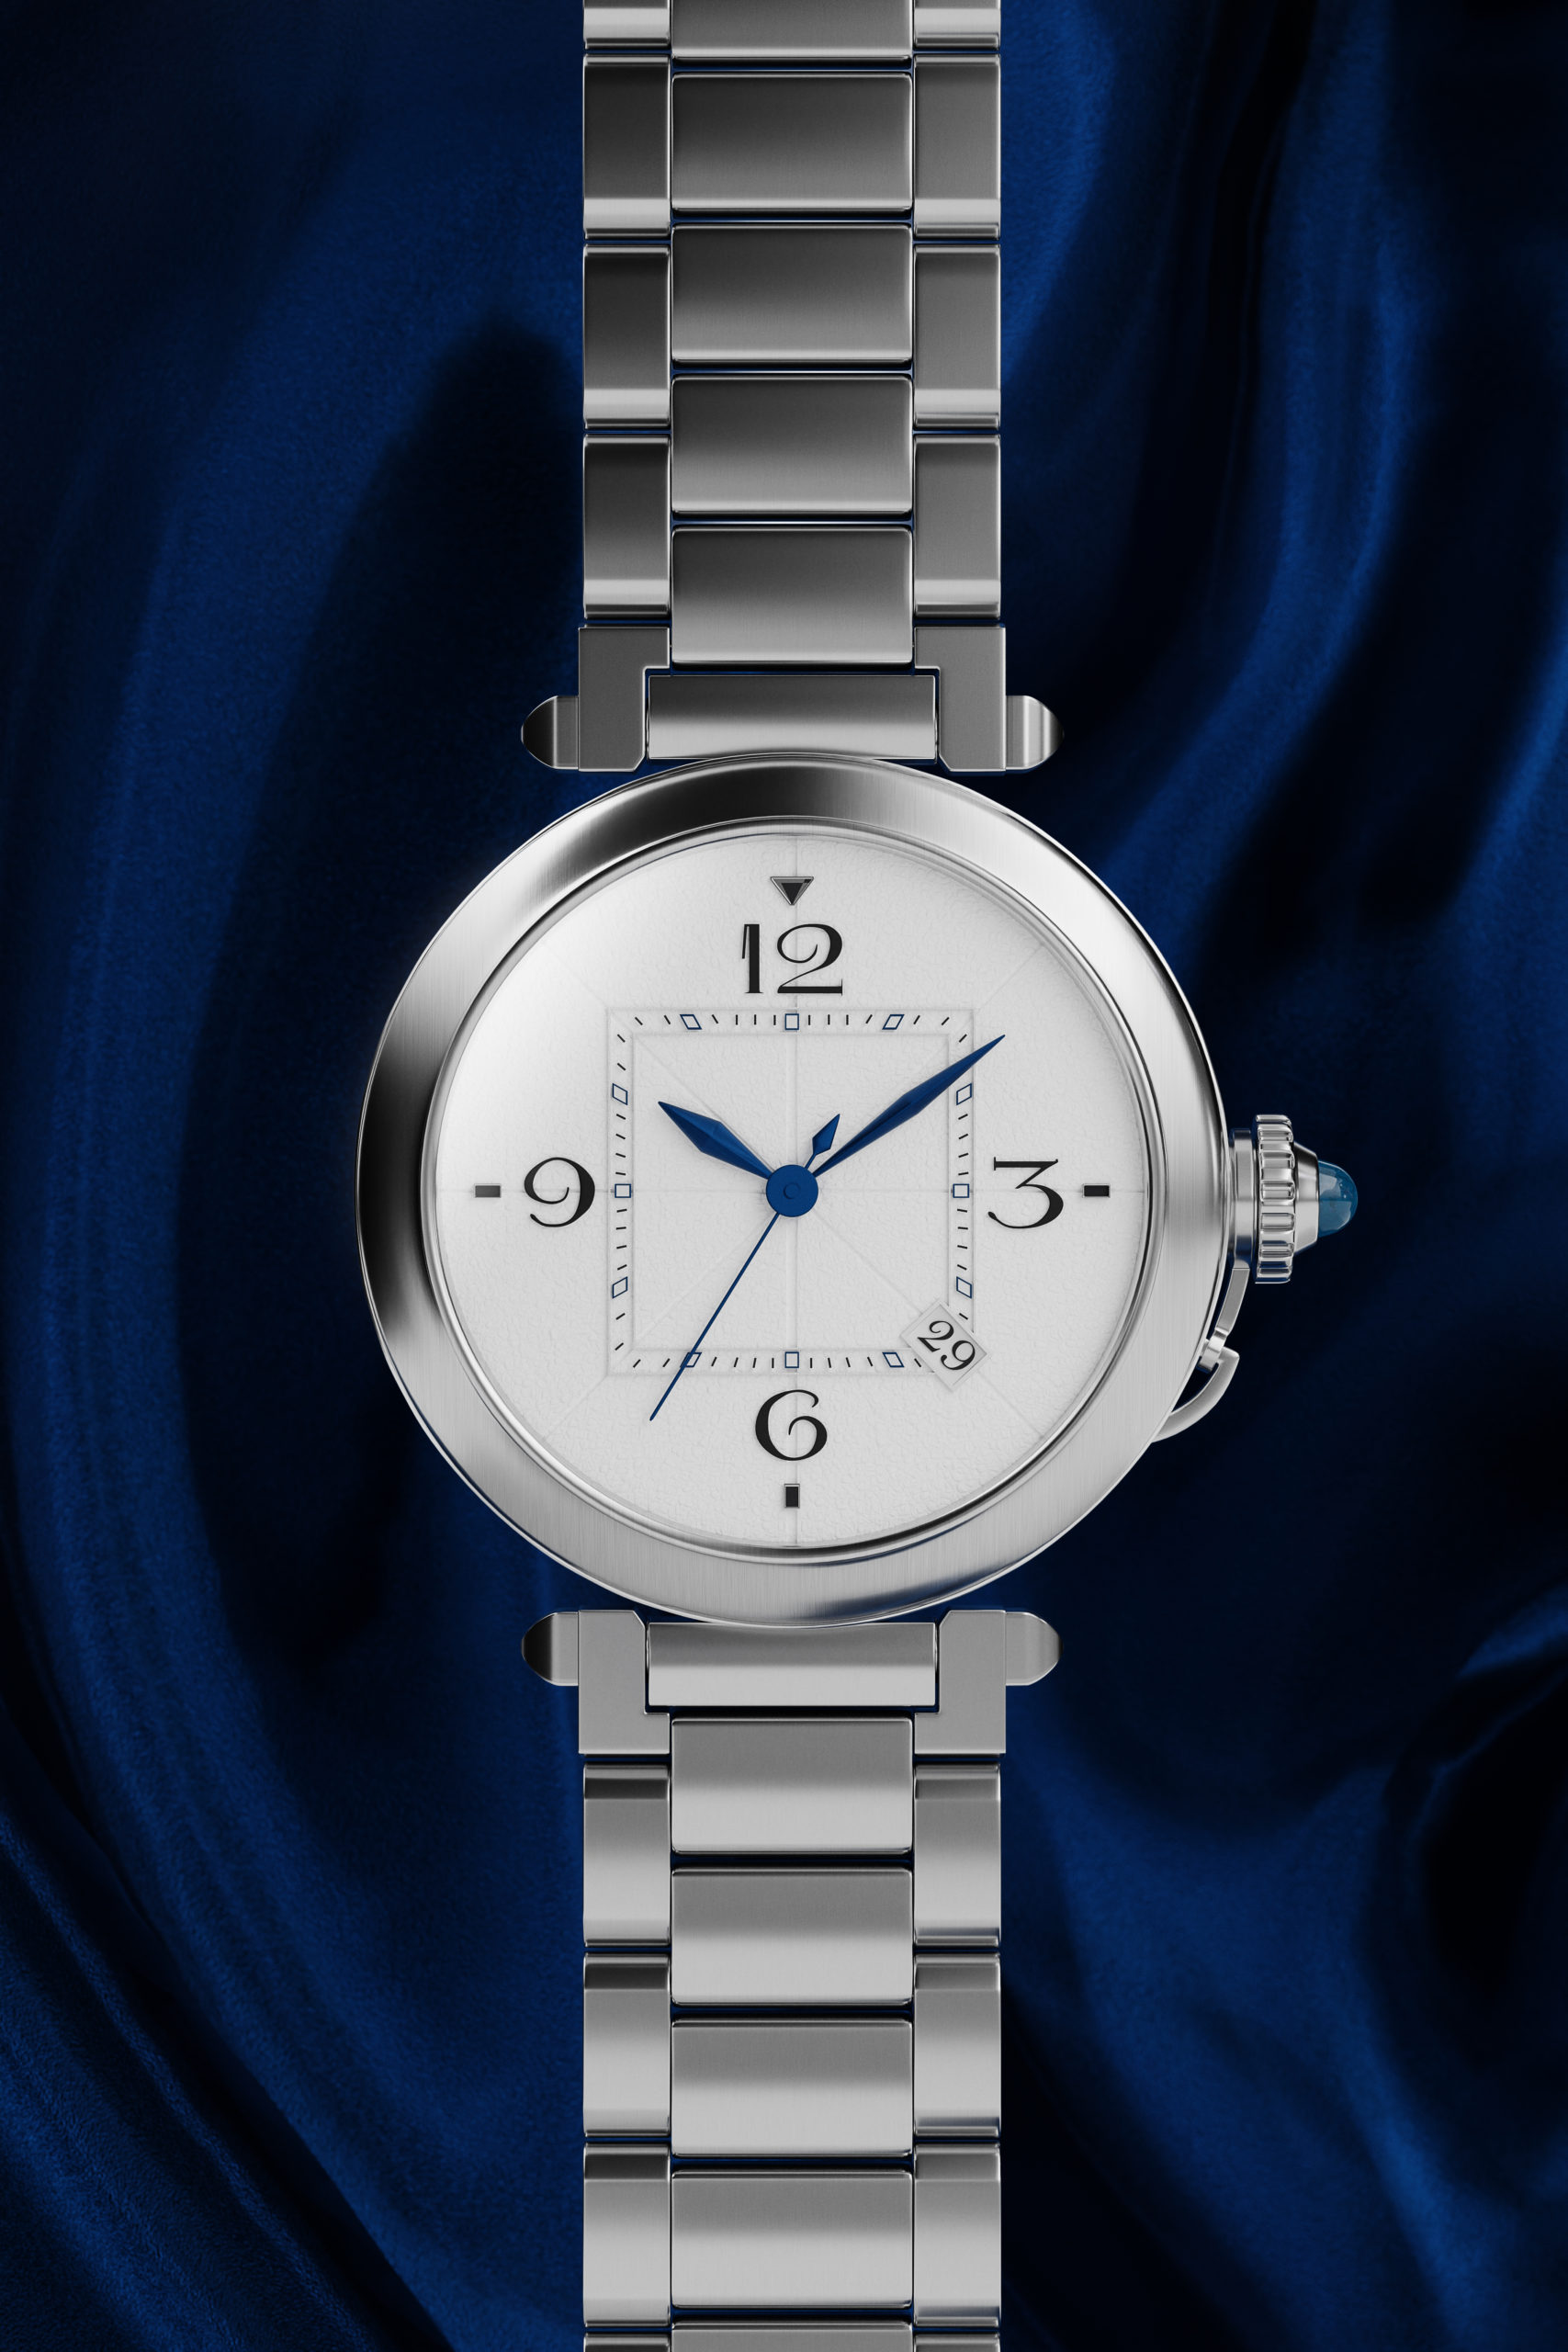 Wenbo Zhao-CGI Luxury Watch-Front Face with dark blue silk background